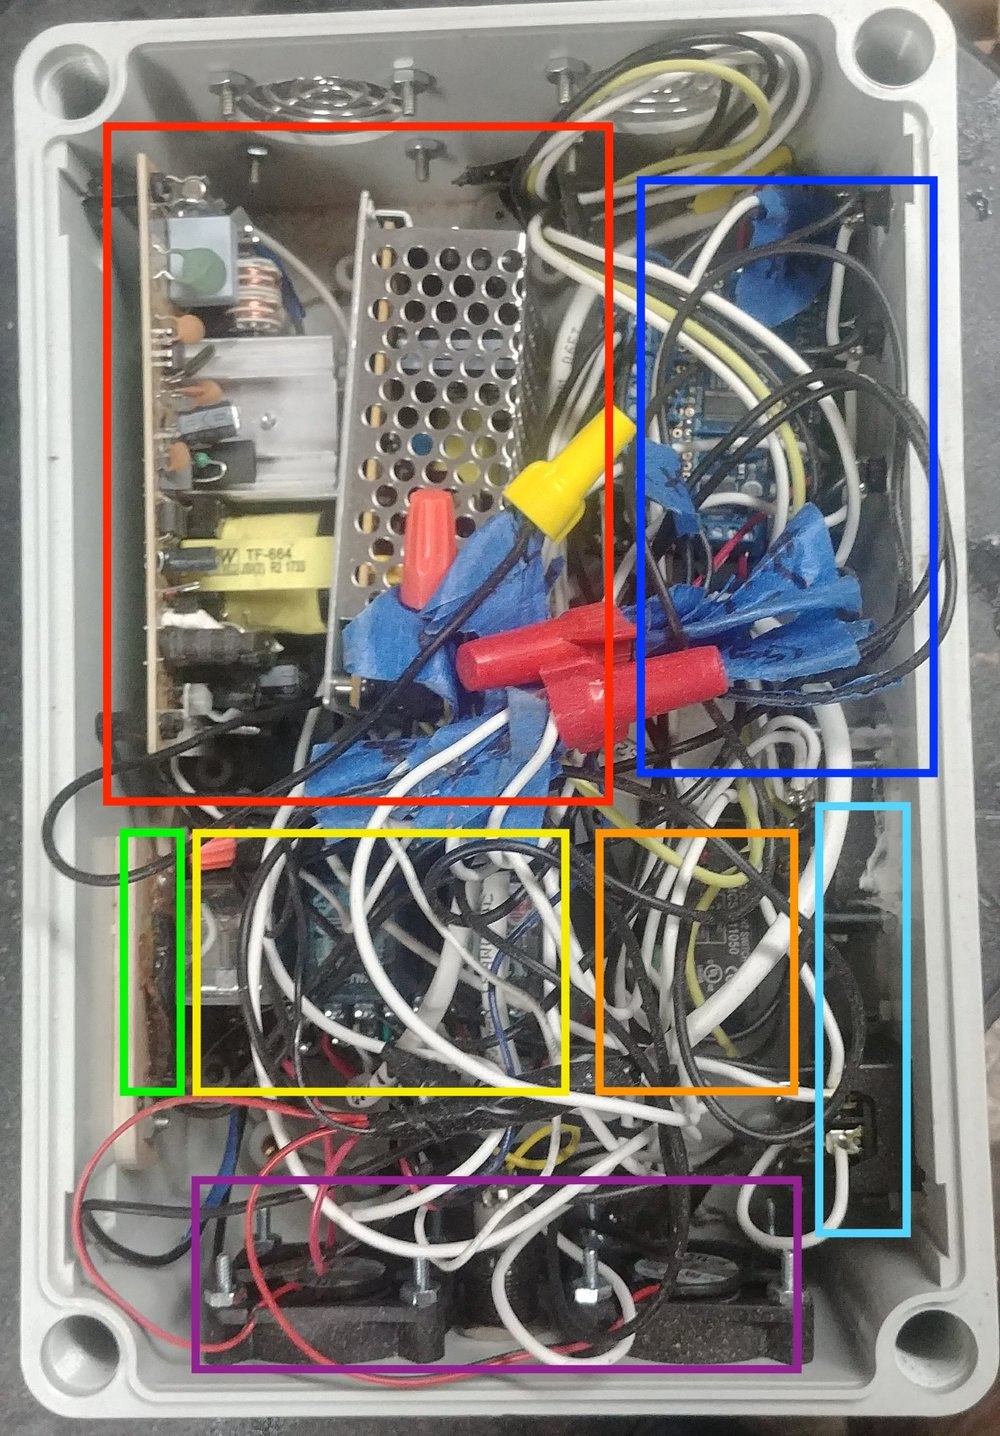 Red: two power supplies, one for the 24v of the laser, and one for the 5v & 12v of the steppers, LEDs, and digital circuitry. Blue: the Arduino and stepper motor controller. Green: mercury tilt switches. Yellow: three relays, two to separate the two stepper motors from the X Controller, and one for the laser module. Orange: Dwyer current switch to detect when the X Controller is on. Turquoise: the power input / output, for two independent circuits so that the high power router of the CNC can be separated from the more delicate circuitry, and allowing for future router speed control. Purple: Wow there's a lot going on in here, we should probably have some fans to keep it all cool!